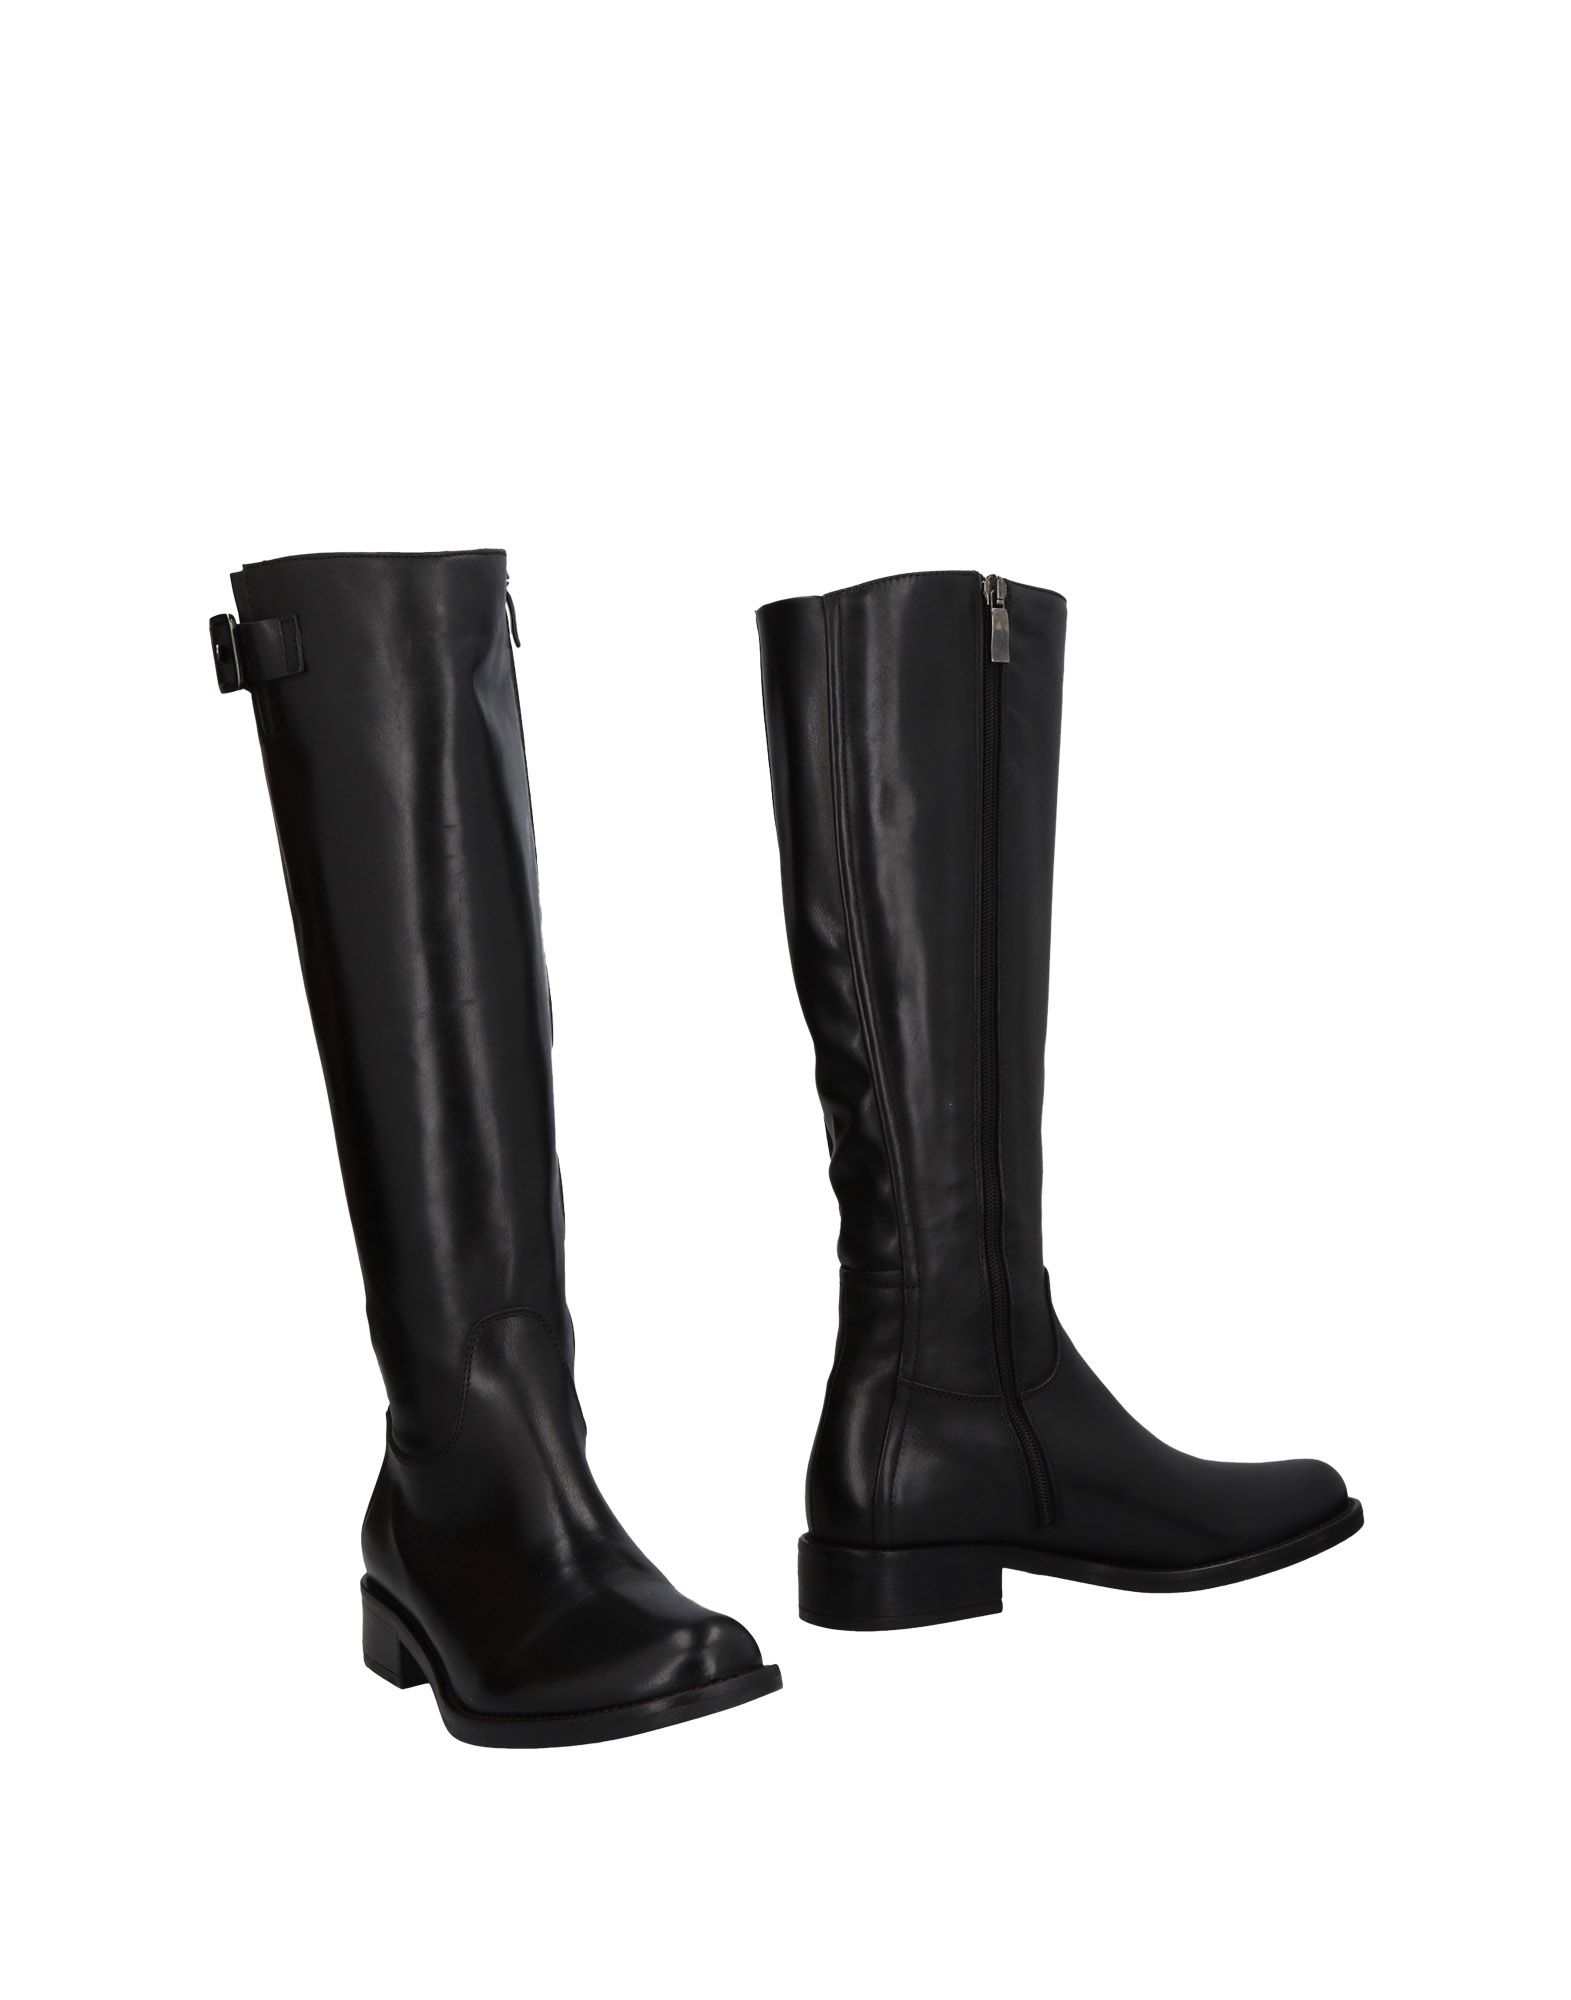 Mally Boots Boots Boots - Women Mally Boots online on  United Kingdom - 11474201TL e3d5ff